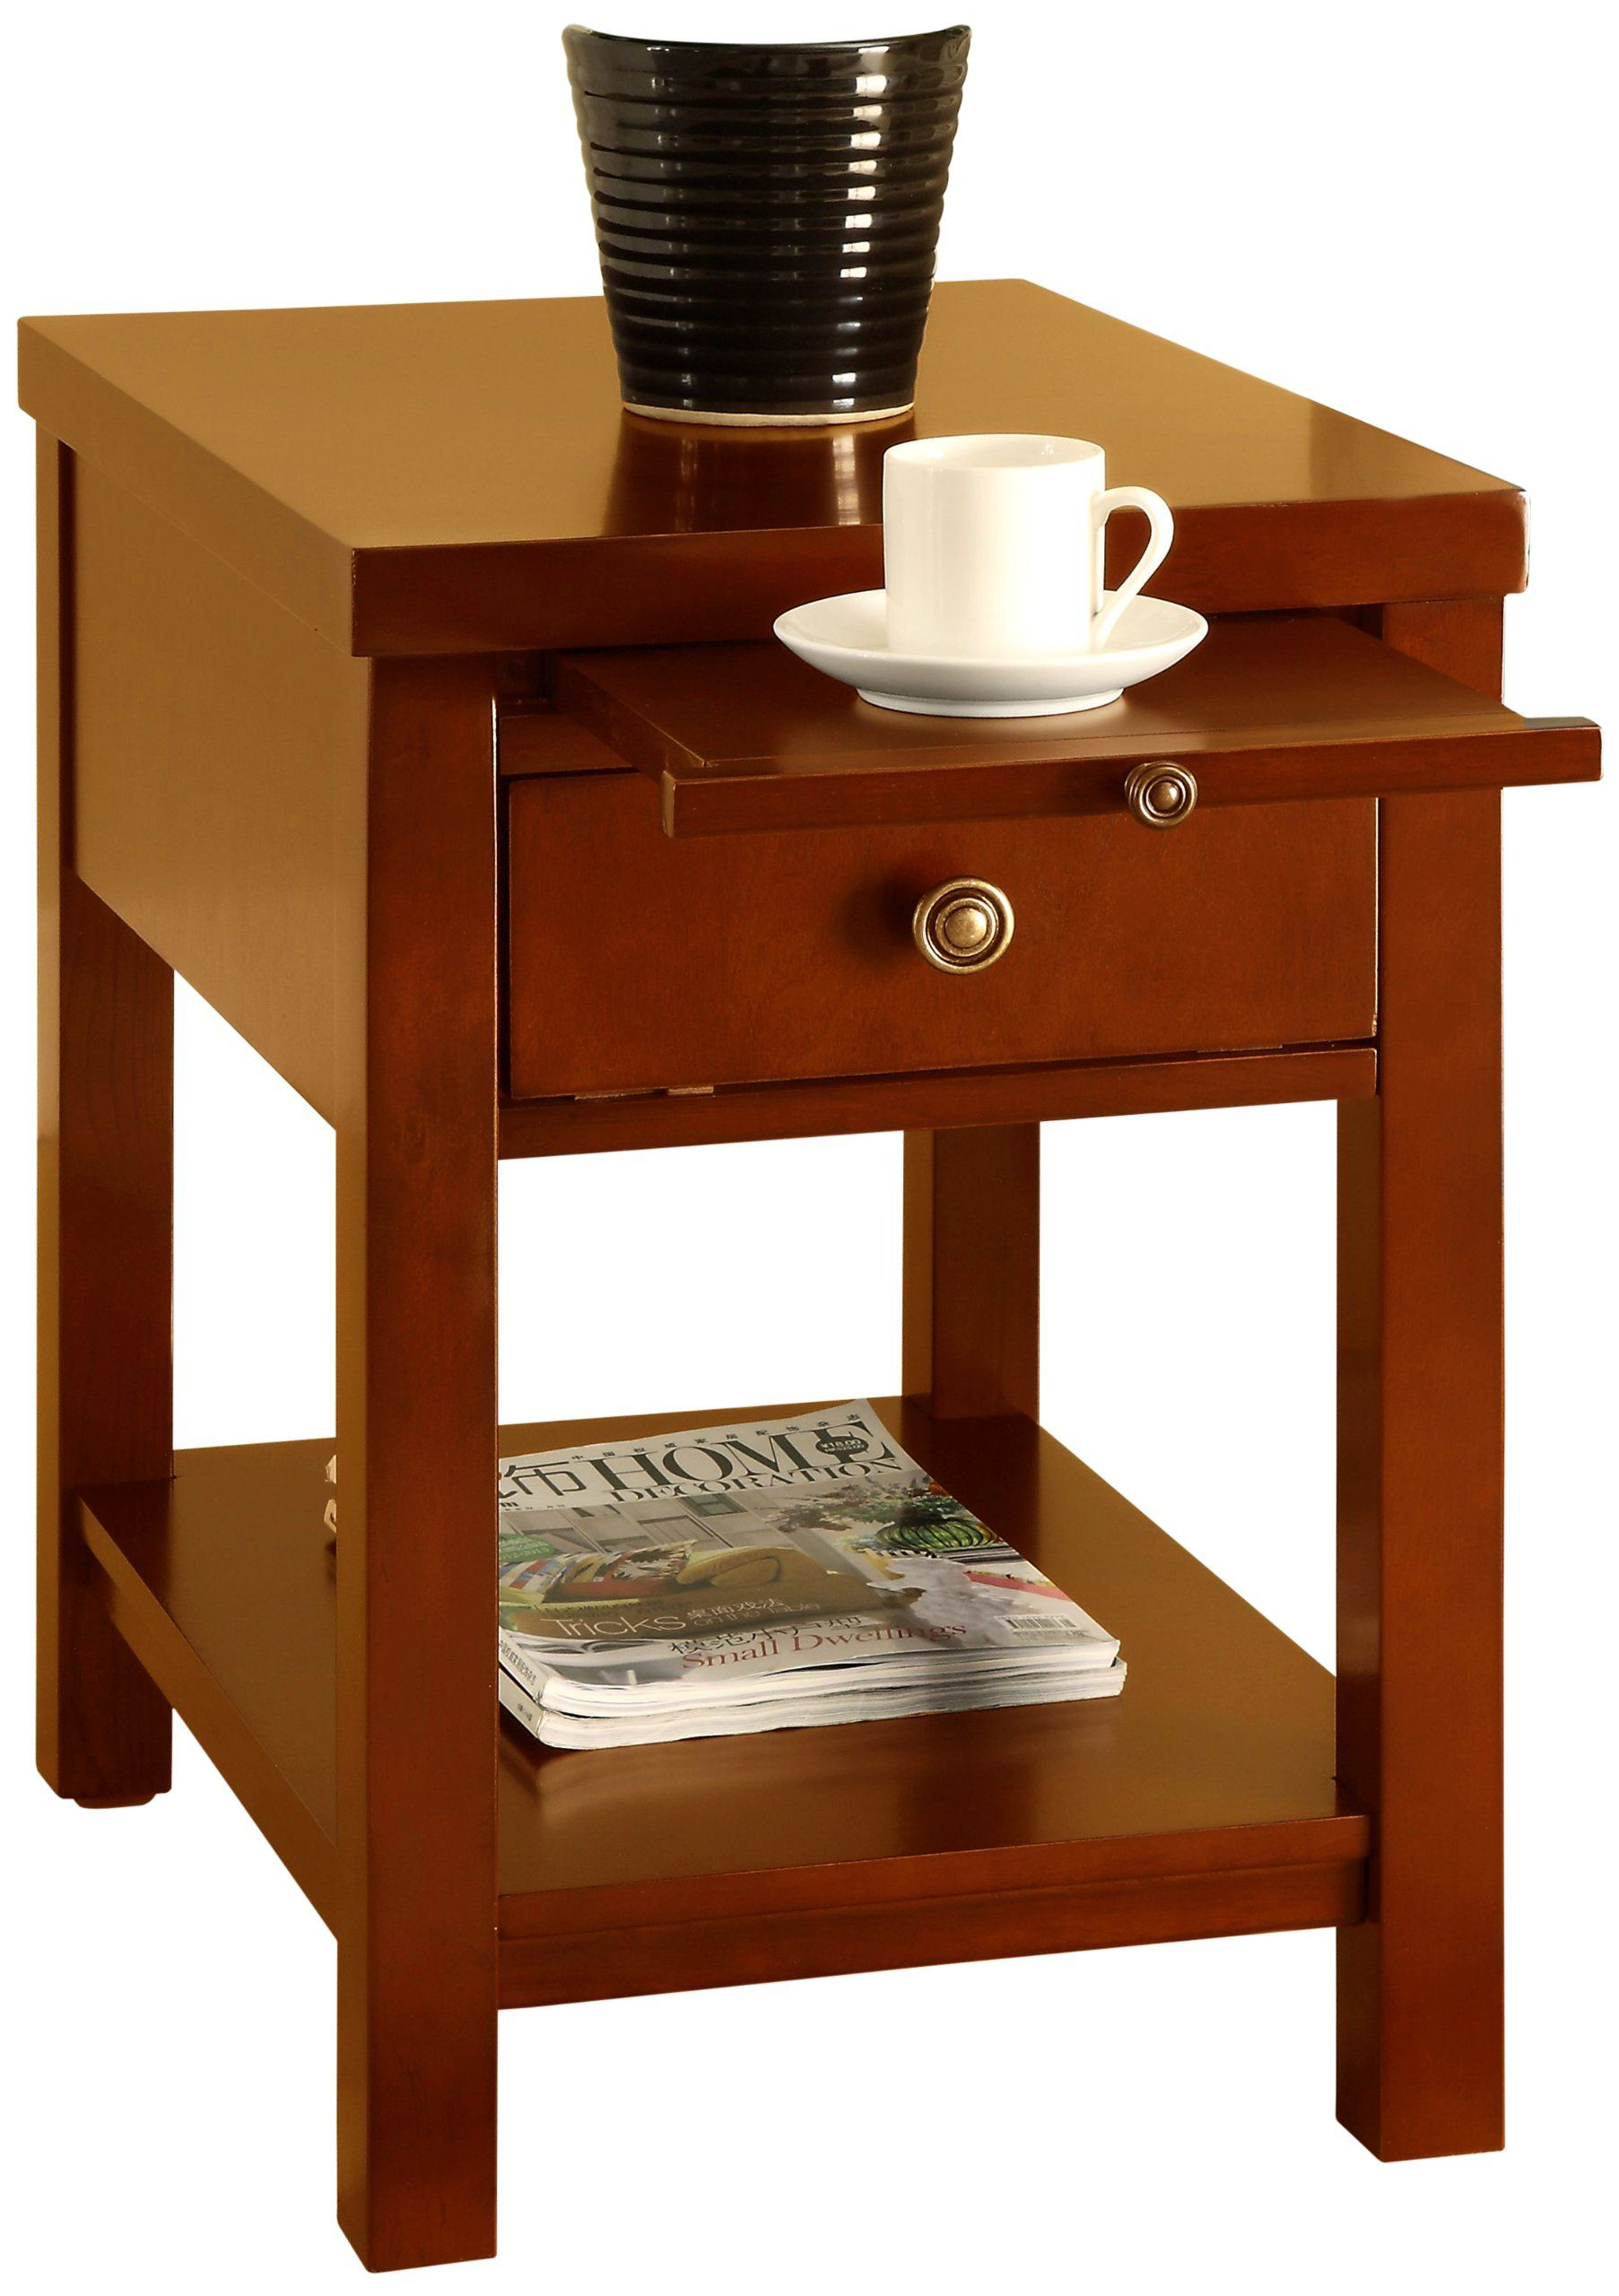 Side Table With Pull Out Shelf Side Table Table Cool Coffee Tables [ 2560 x 1805 Pixel ]